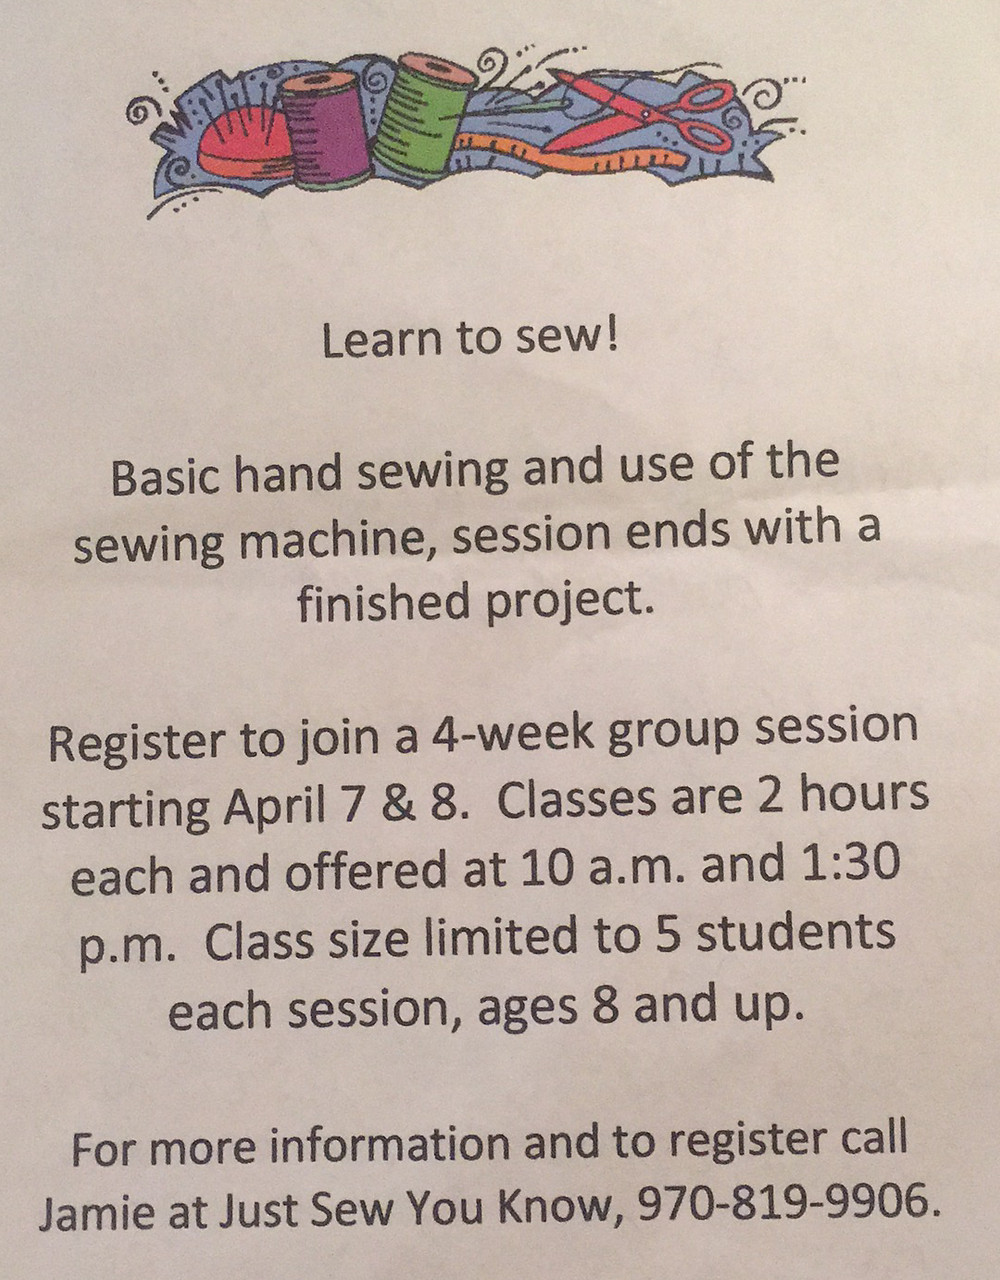 Learn To Sew with Just Sew You Know